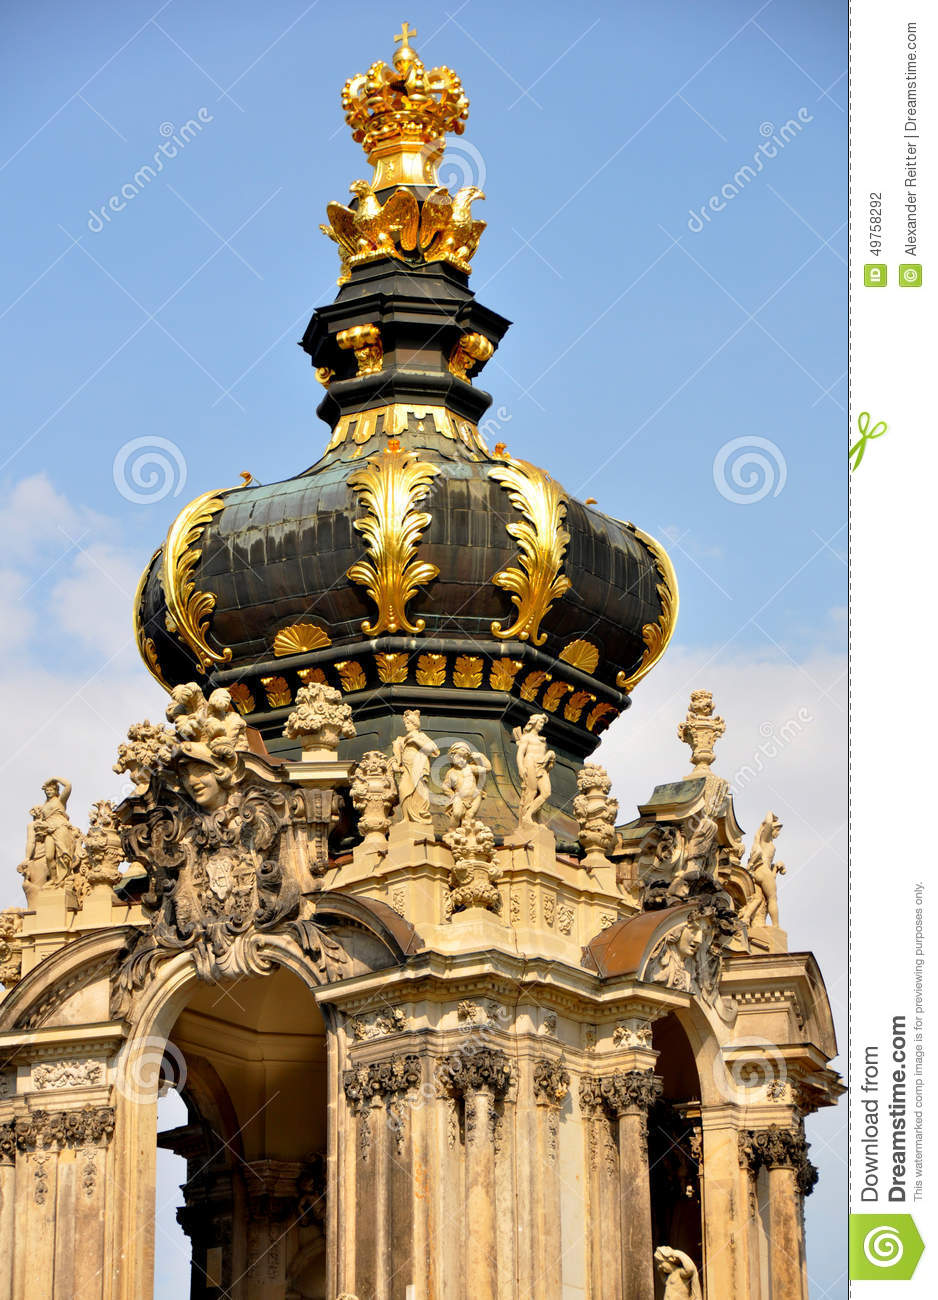 Kronentor, Baroque Architecture Of Dresden's Zwinger, Germany.